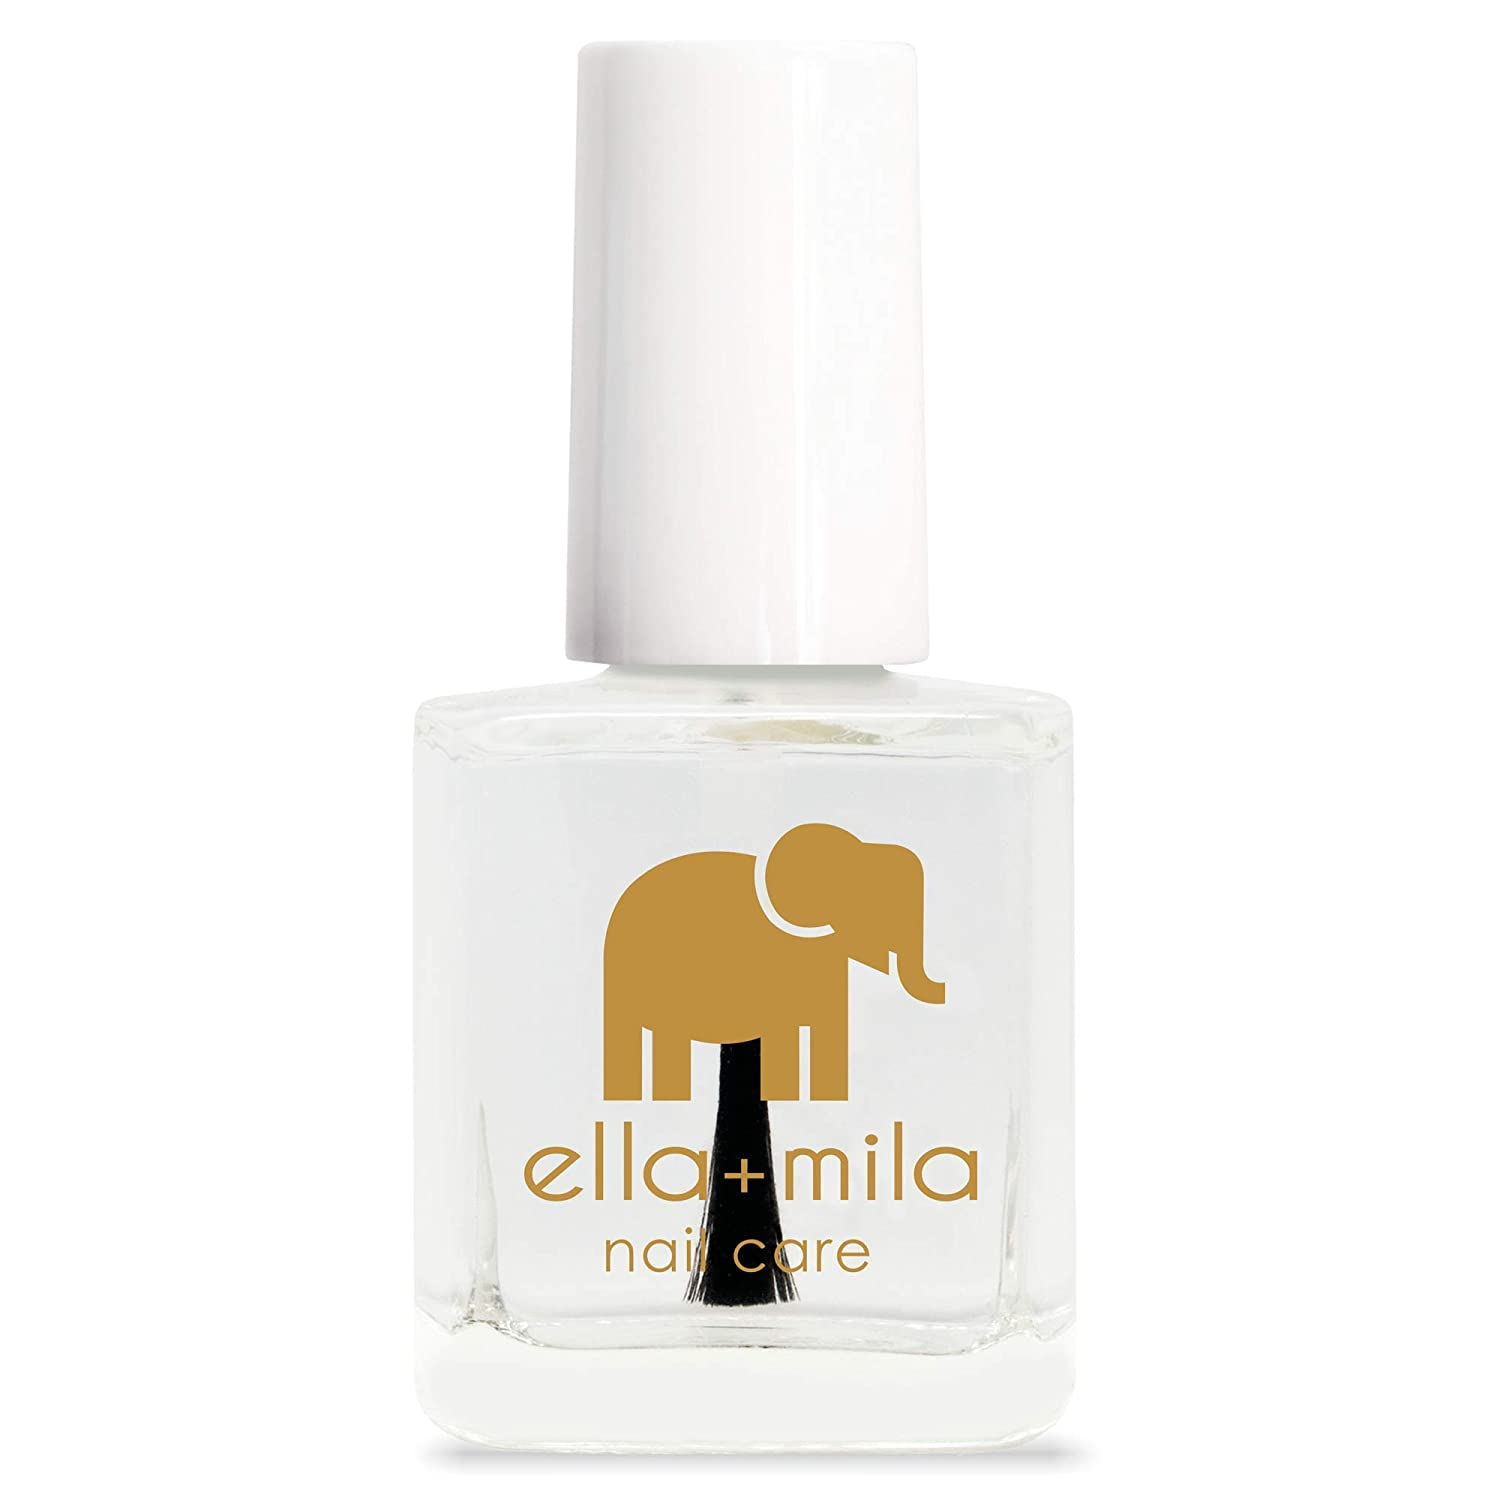 ella+mila Nail Care, Quick Dry Top Coat - In a Rush (high glossy shine, UV inhibitor which prevents yellowing)